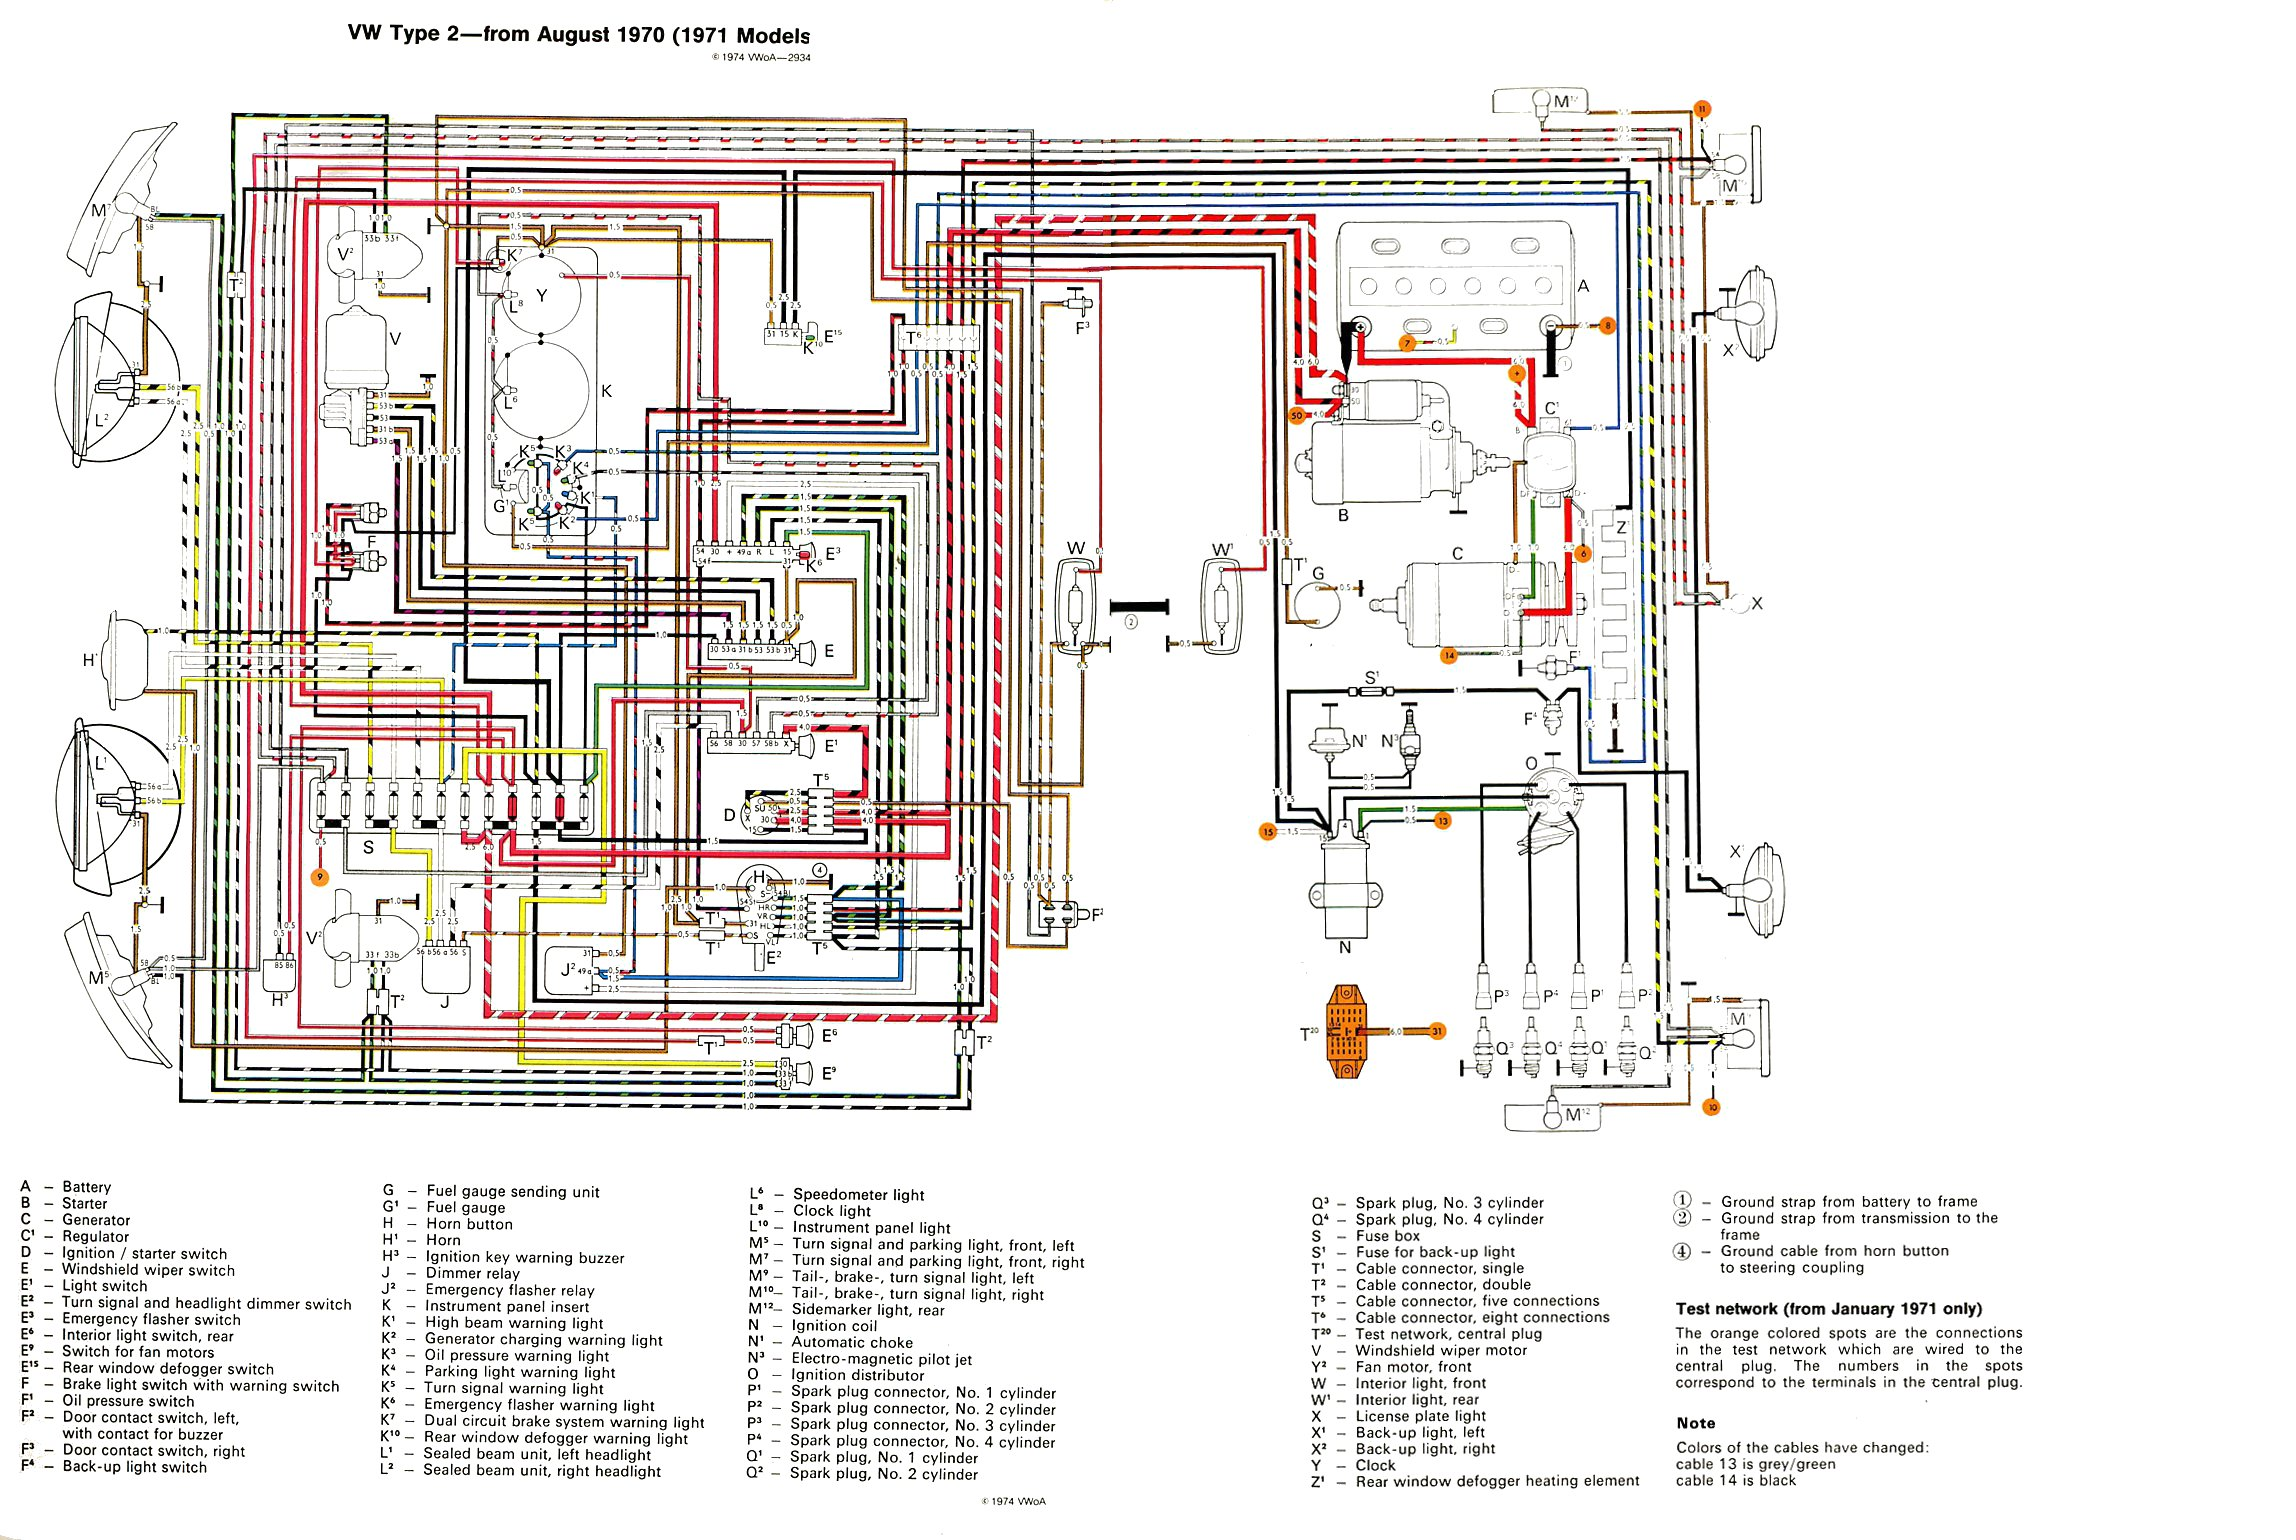 Wiring Diagram 1999 Jeep S Turn Start Building A Airbag For 98 Wrangler Thesamba Com Type 2 Diagrams Rh Air Bag Cherokee